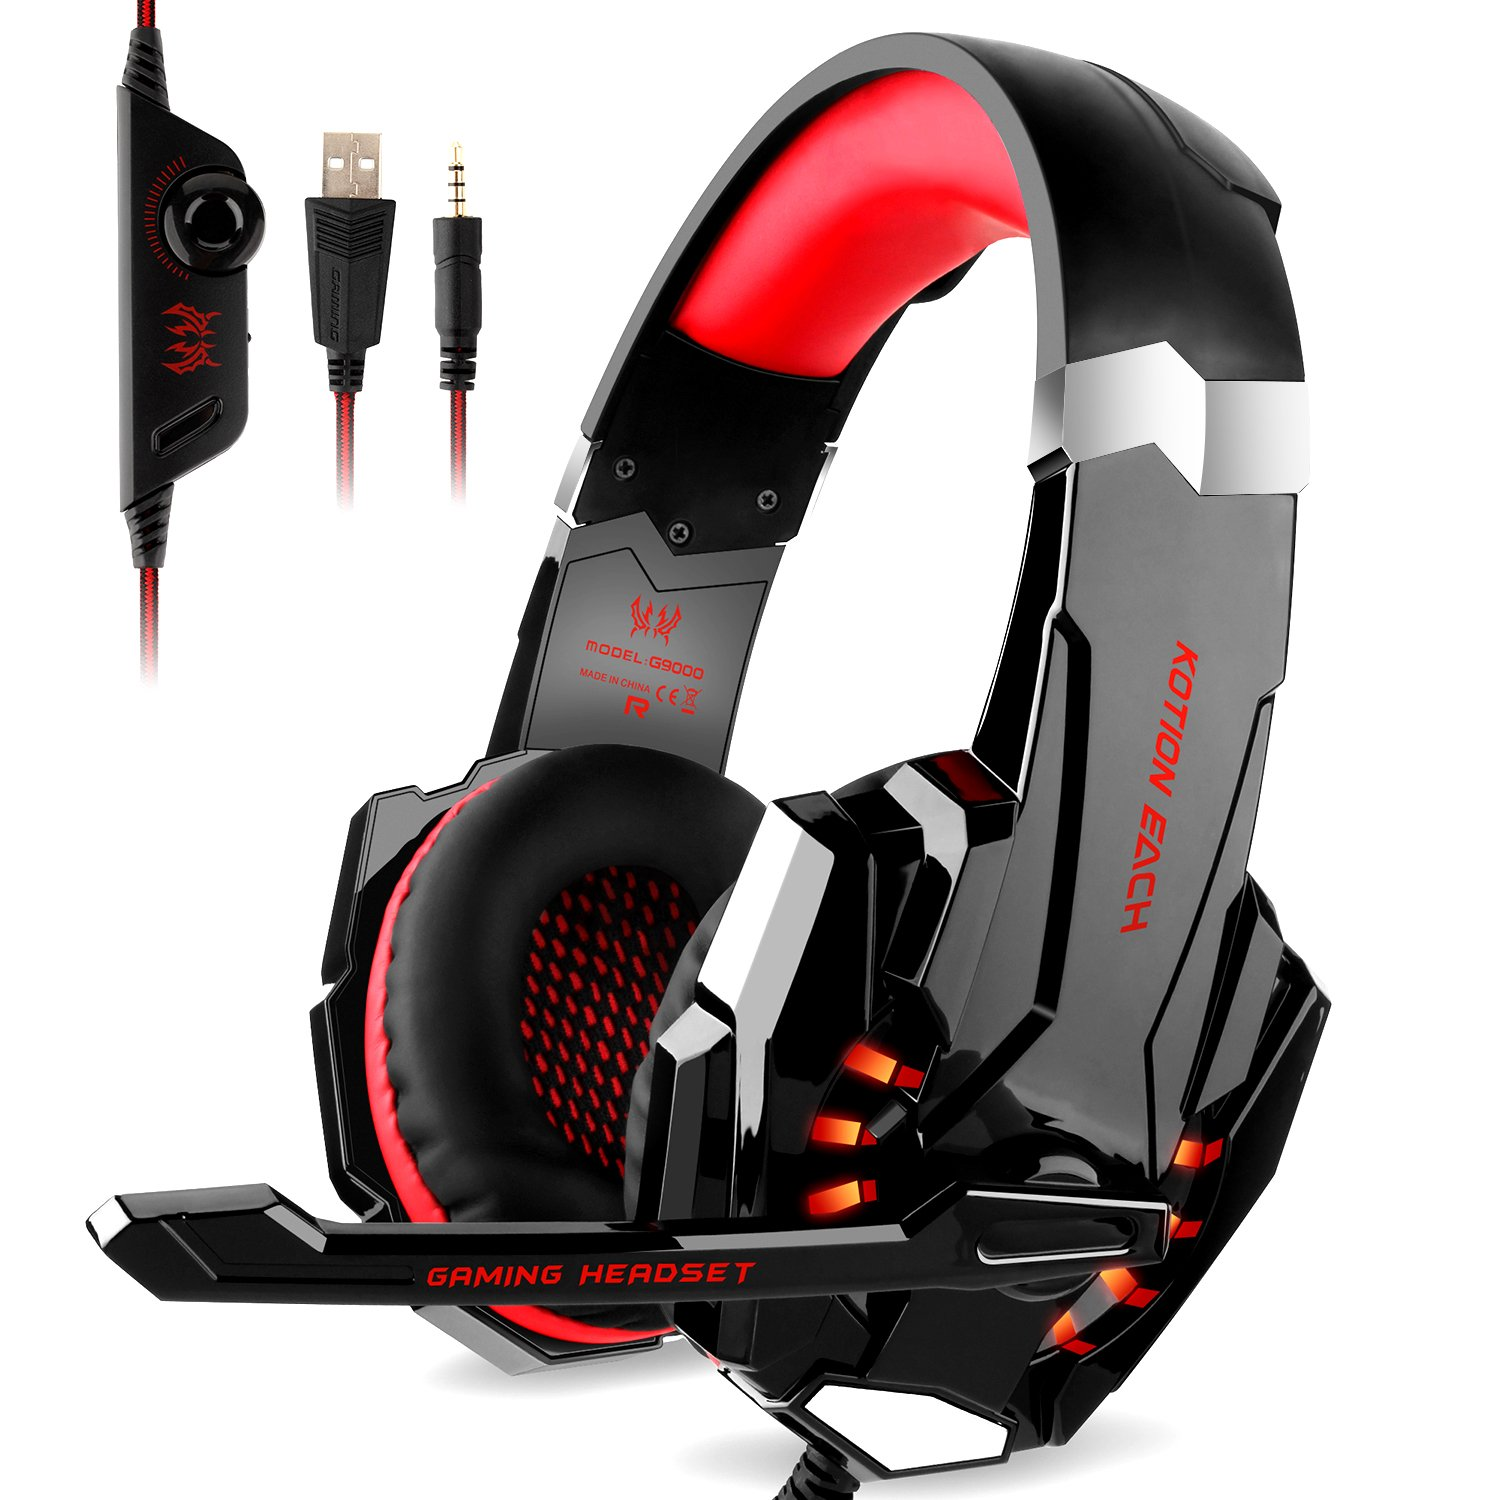 DIZA100 Kotion Each G9000 Gaming Headset Headphone 3.5mm Stereo Jack with Mic LED Light for Xbox One S/Xbox one/PS4/Tablet/Laptop/Cell Phone-Black&Red